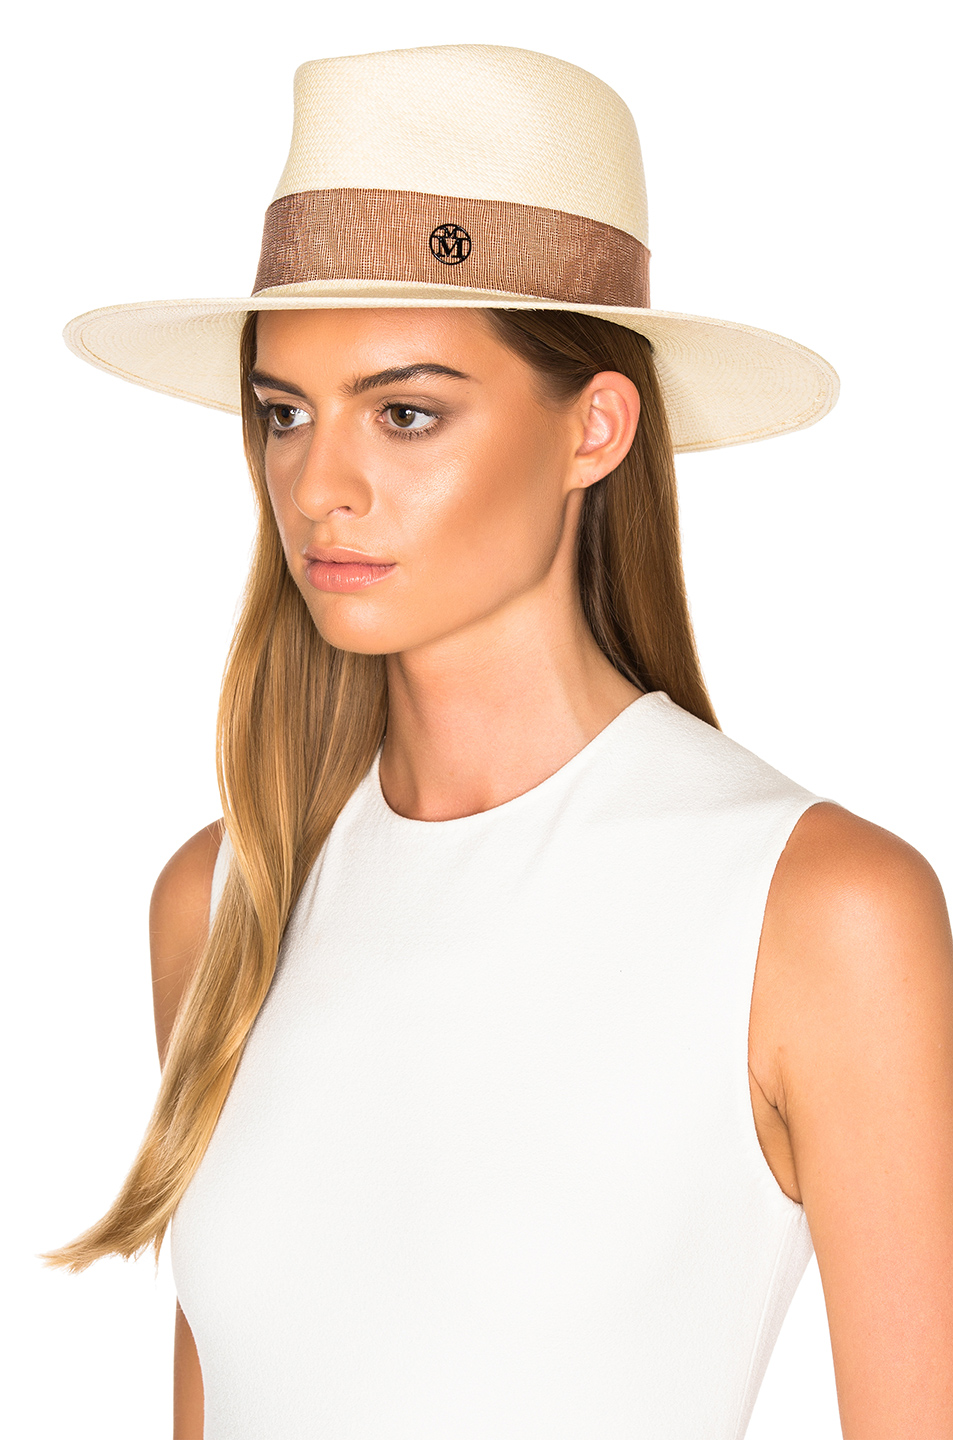 Buy Original Maison Michel Charles Hat at Indonesia  67ea569eed4